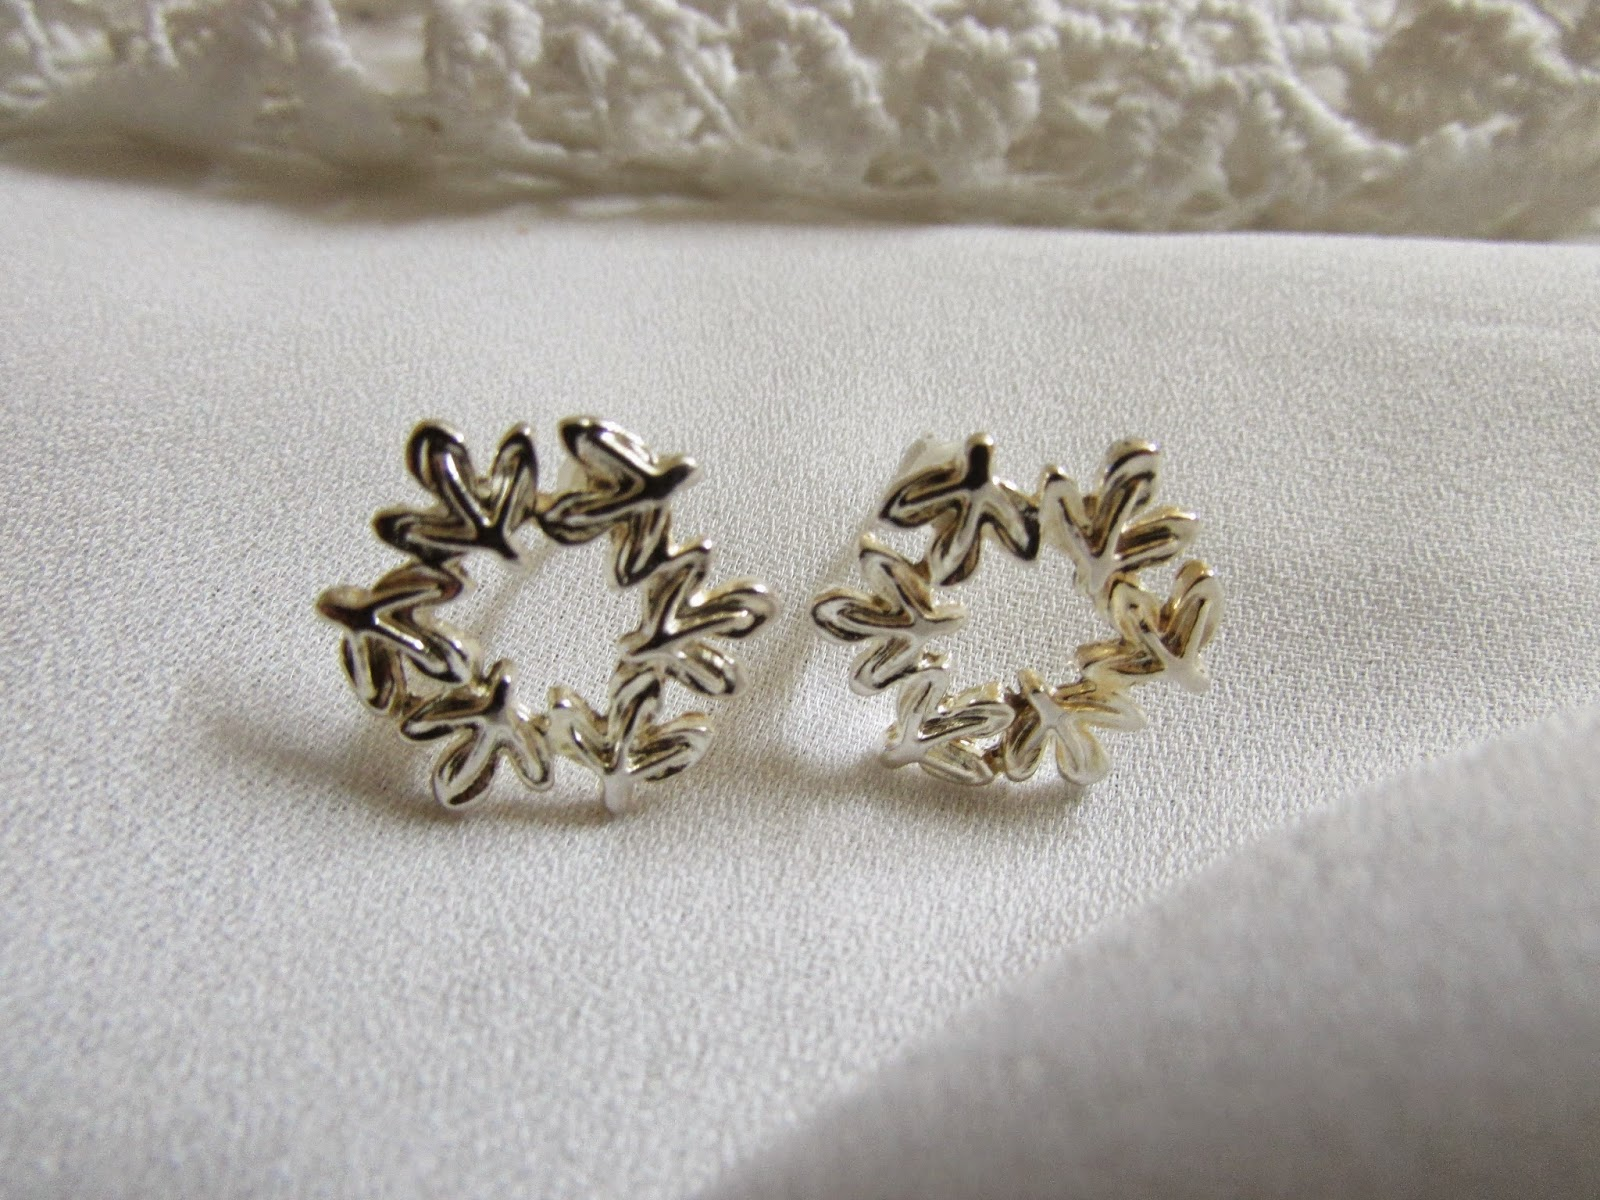 yesfor, yesfor jewelry, yesfor fashion jewelry, yesfor review, fall leaves earrings, silver earrings, vintage ring, gold vintage ring